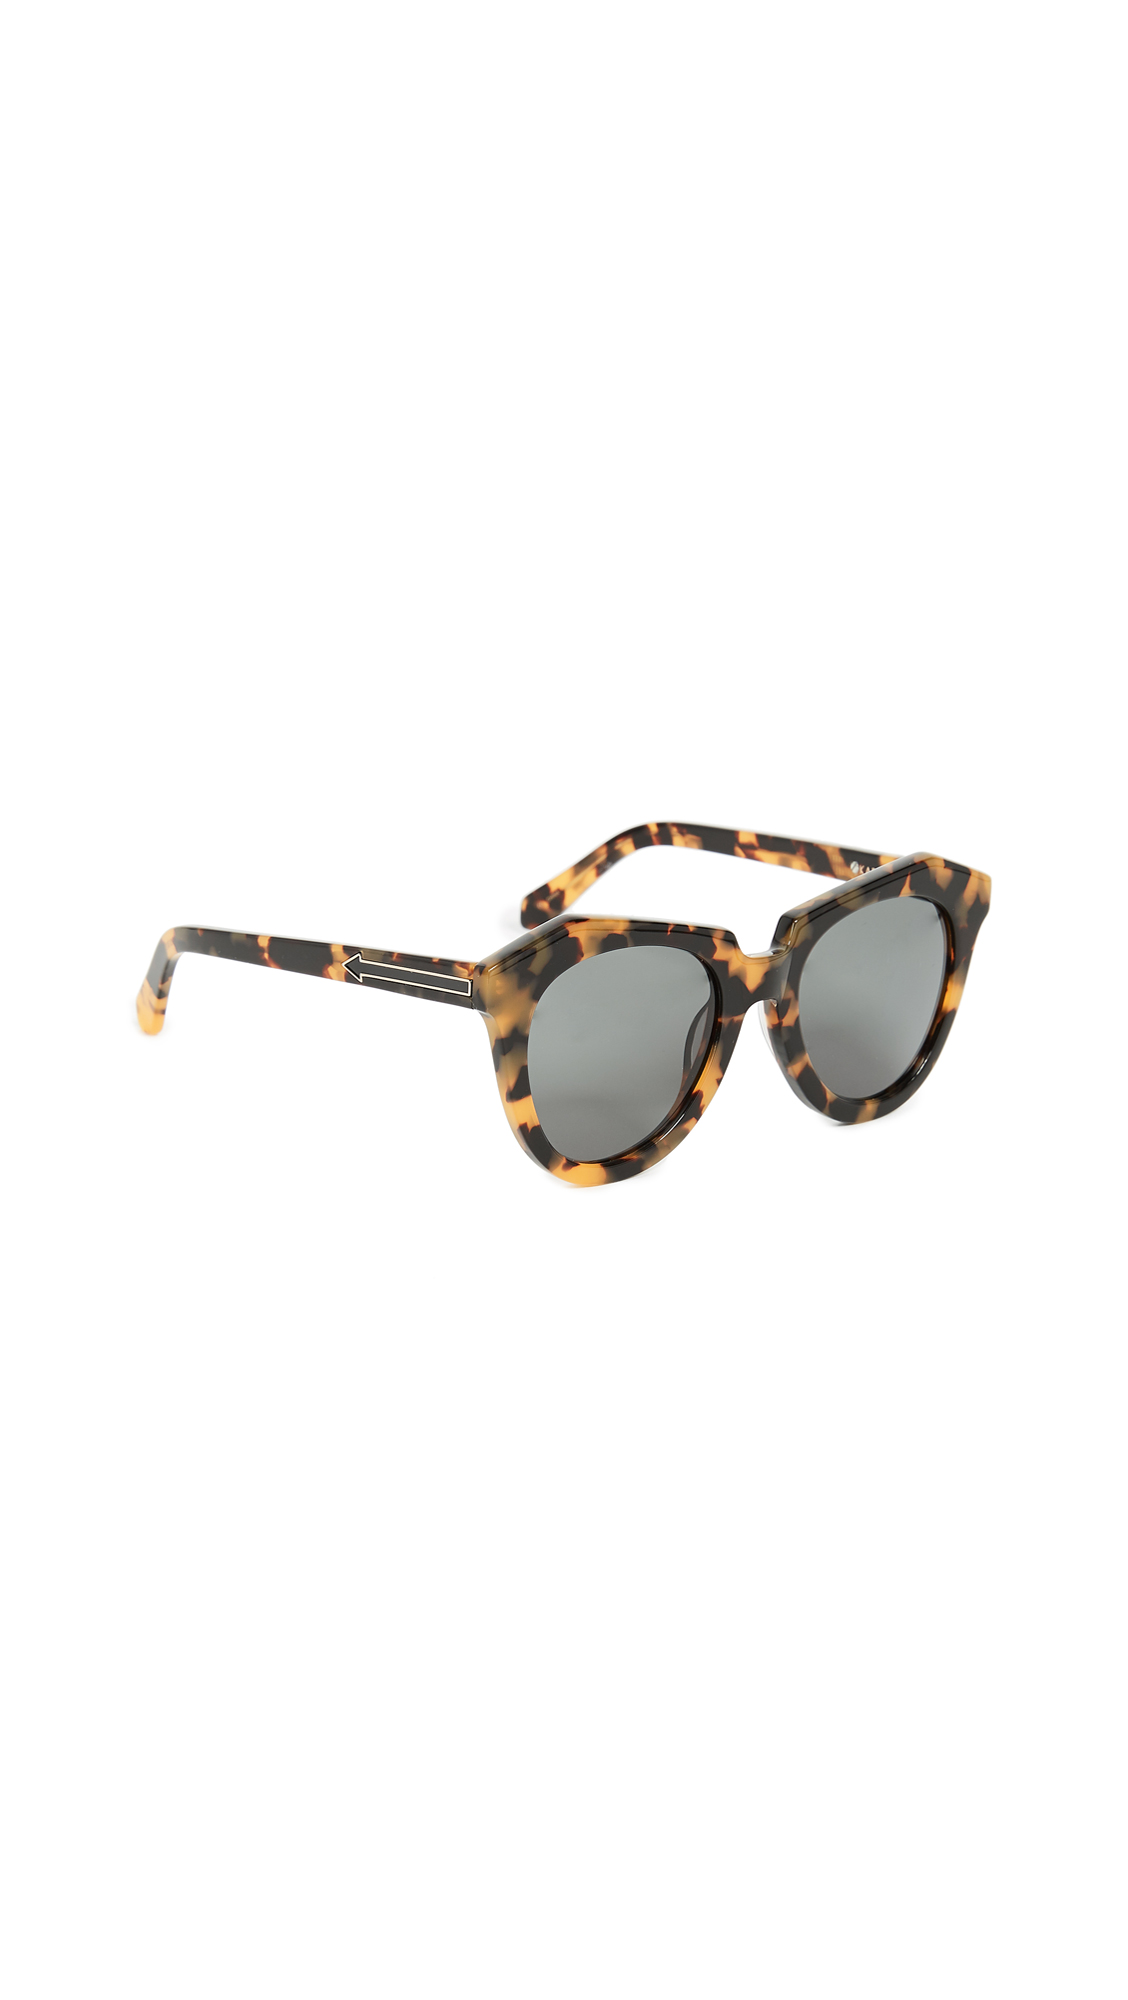 e2dd77f0314c Karen Walker The Number One Sunglasses